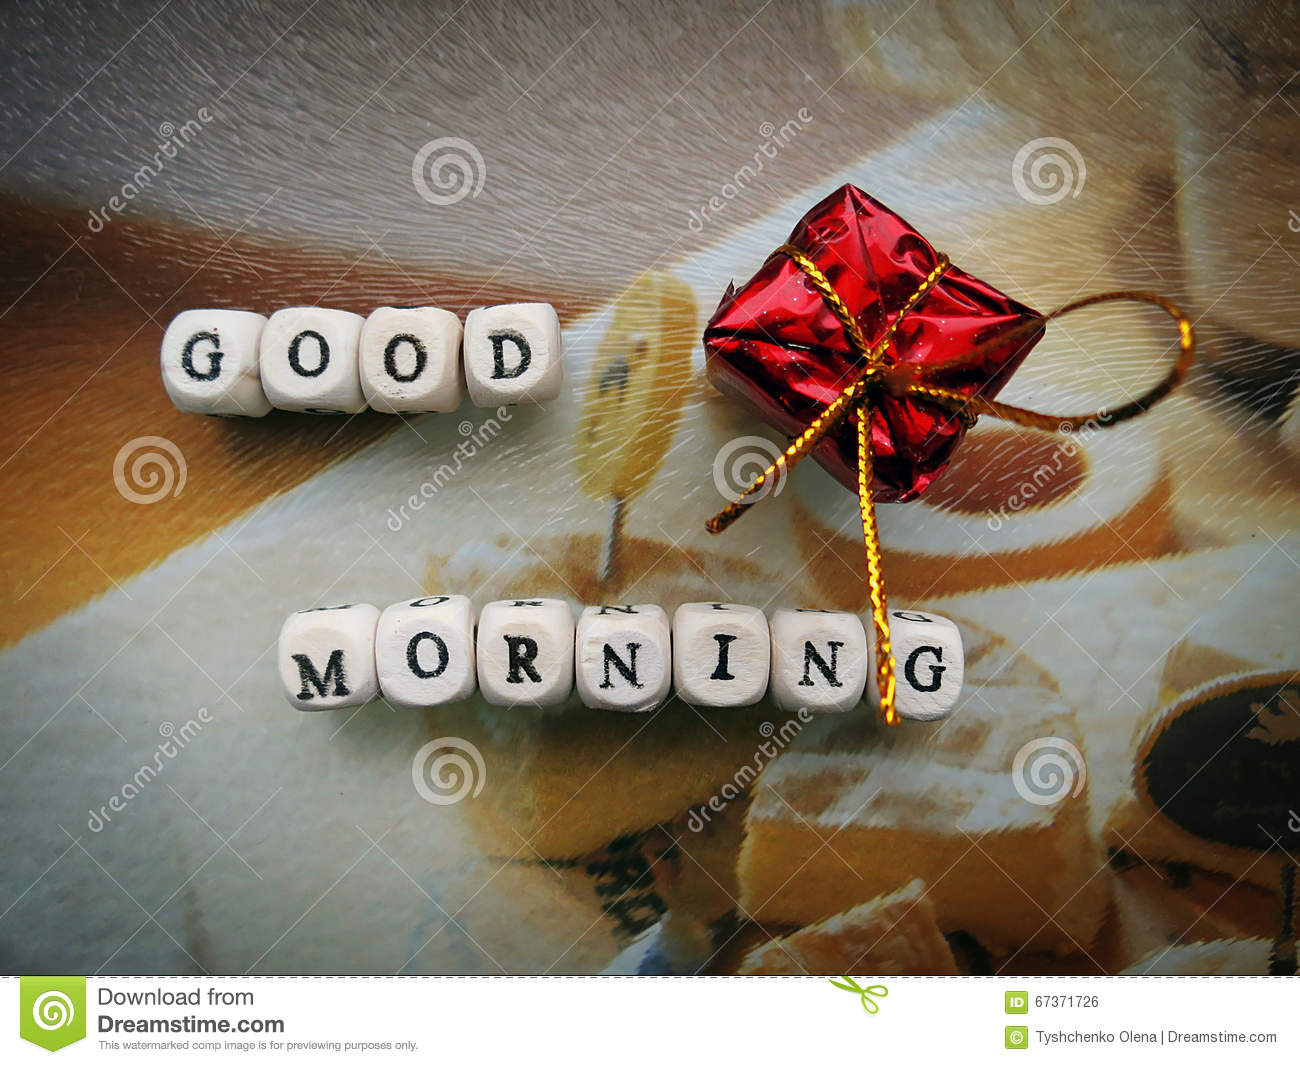 Good morning small wooden cubes and a gift stock photo image of good morning small wooden cubes and a gift stock photo image of board keyword 67371726 negle Gallery